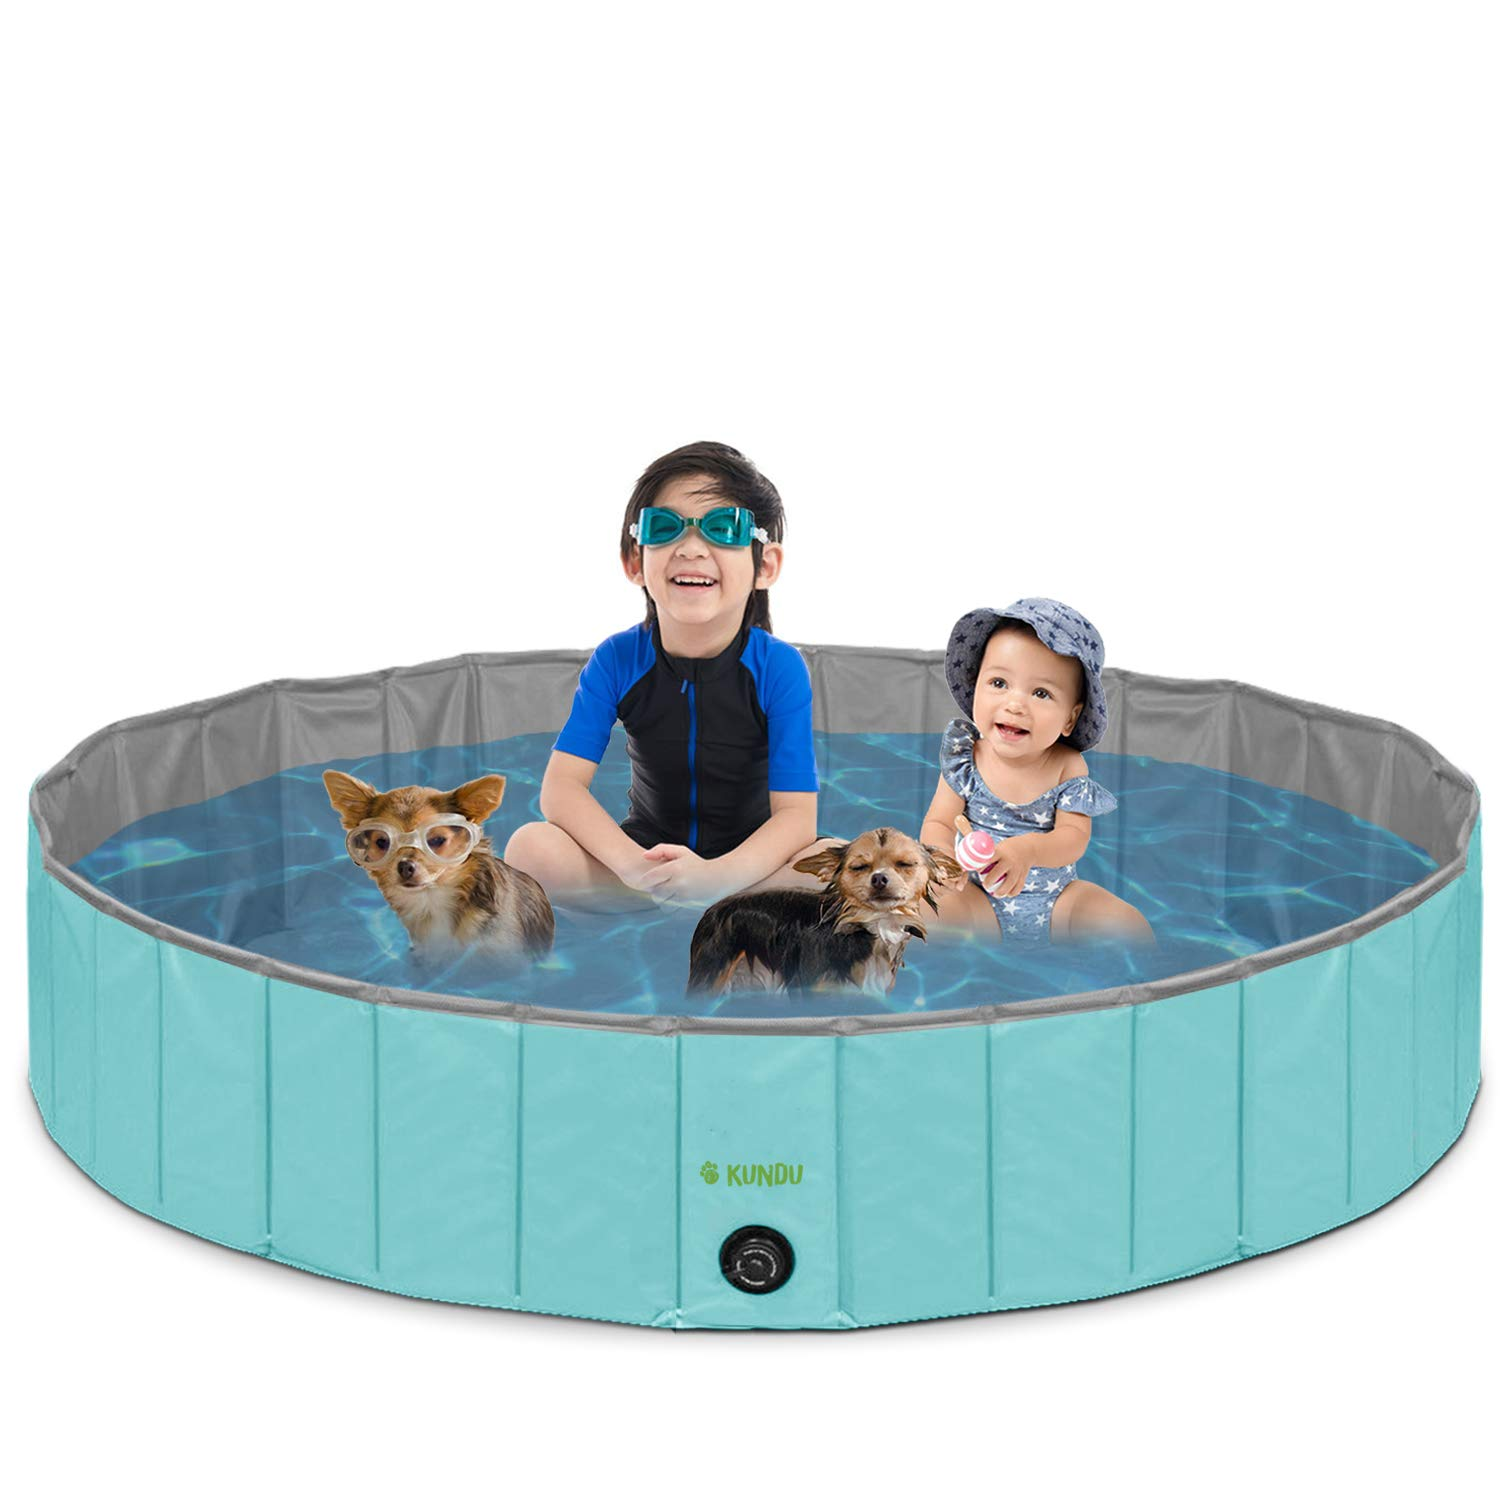 Kundu Round (63'' Diameter x 12'' Deep) Heavy Duty PVC Outdoor Pets and Kids Pool/Bathing Tub - Portable & Foldable - Extra Large